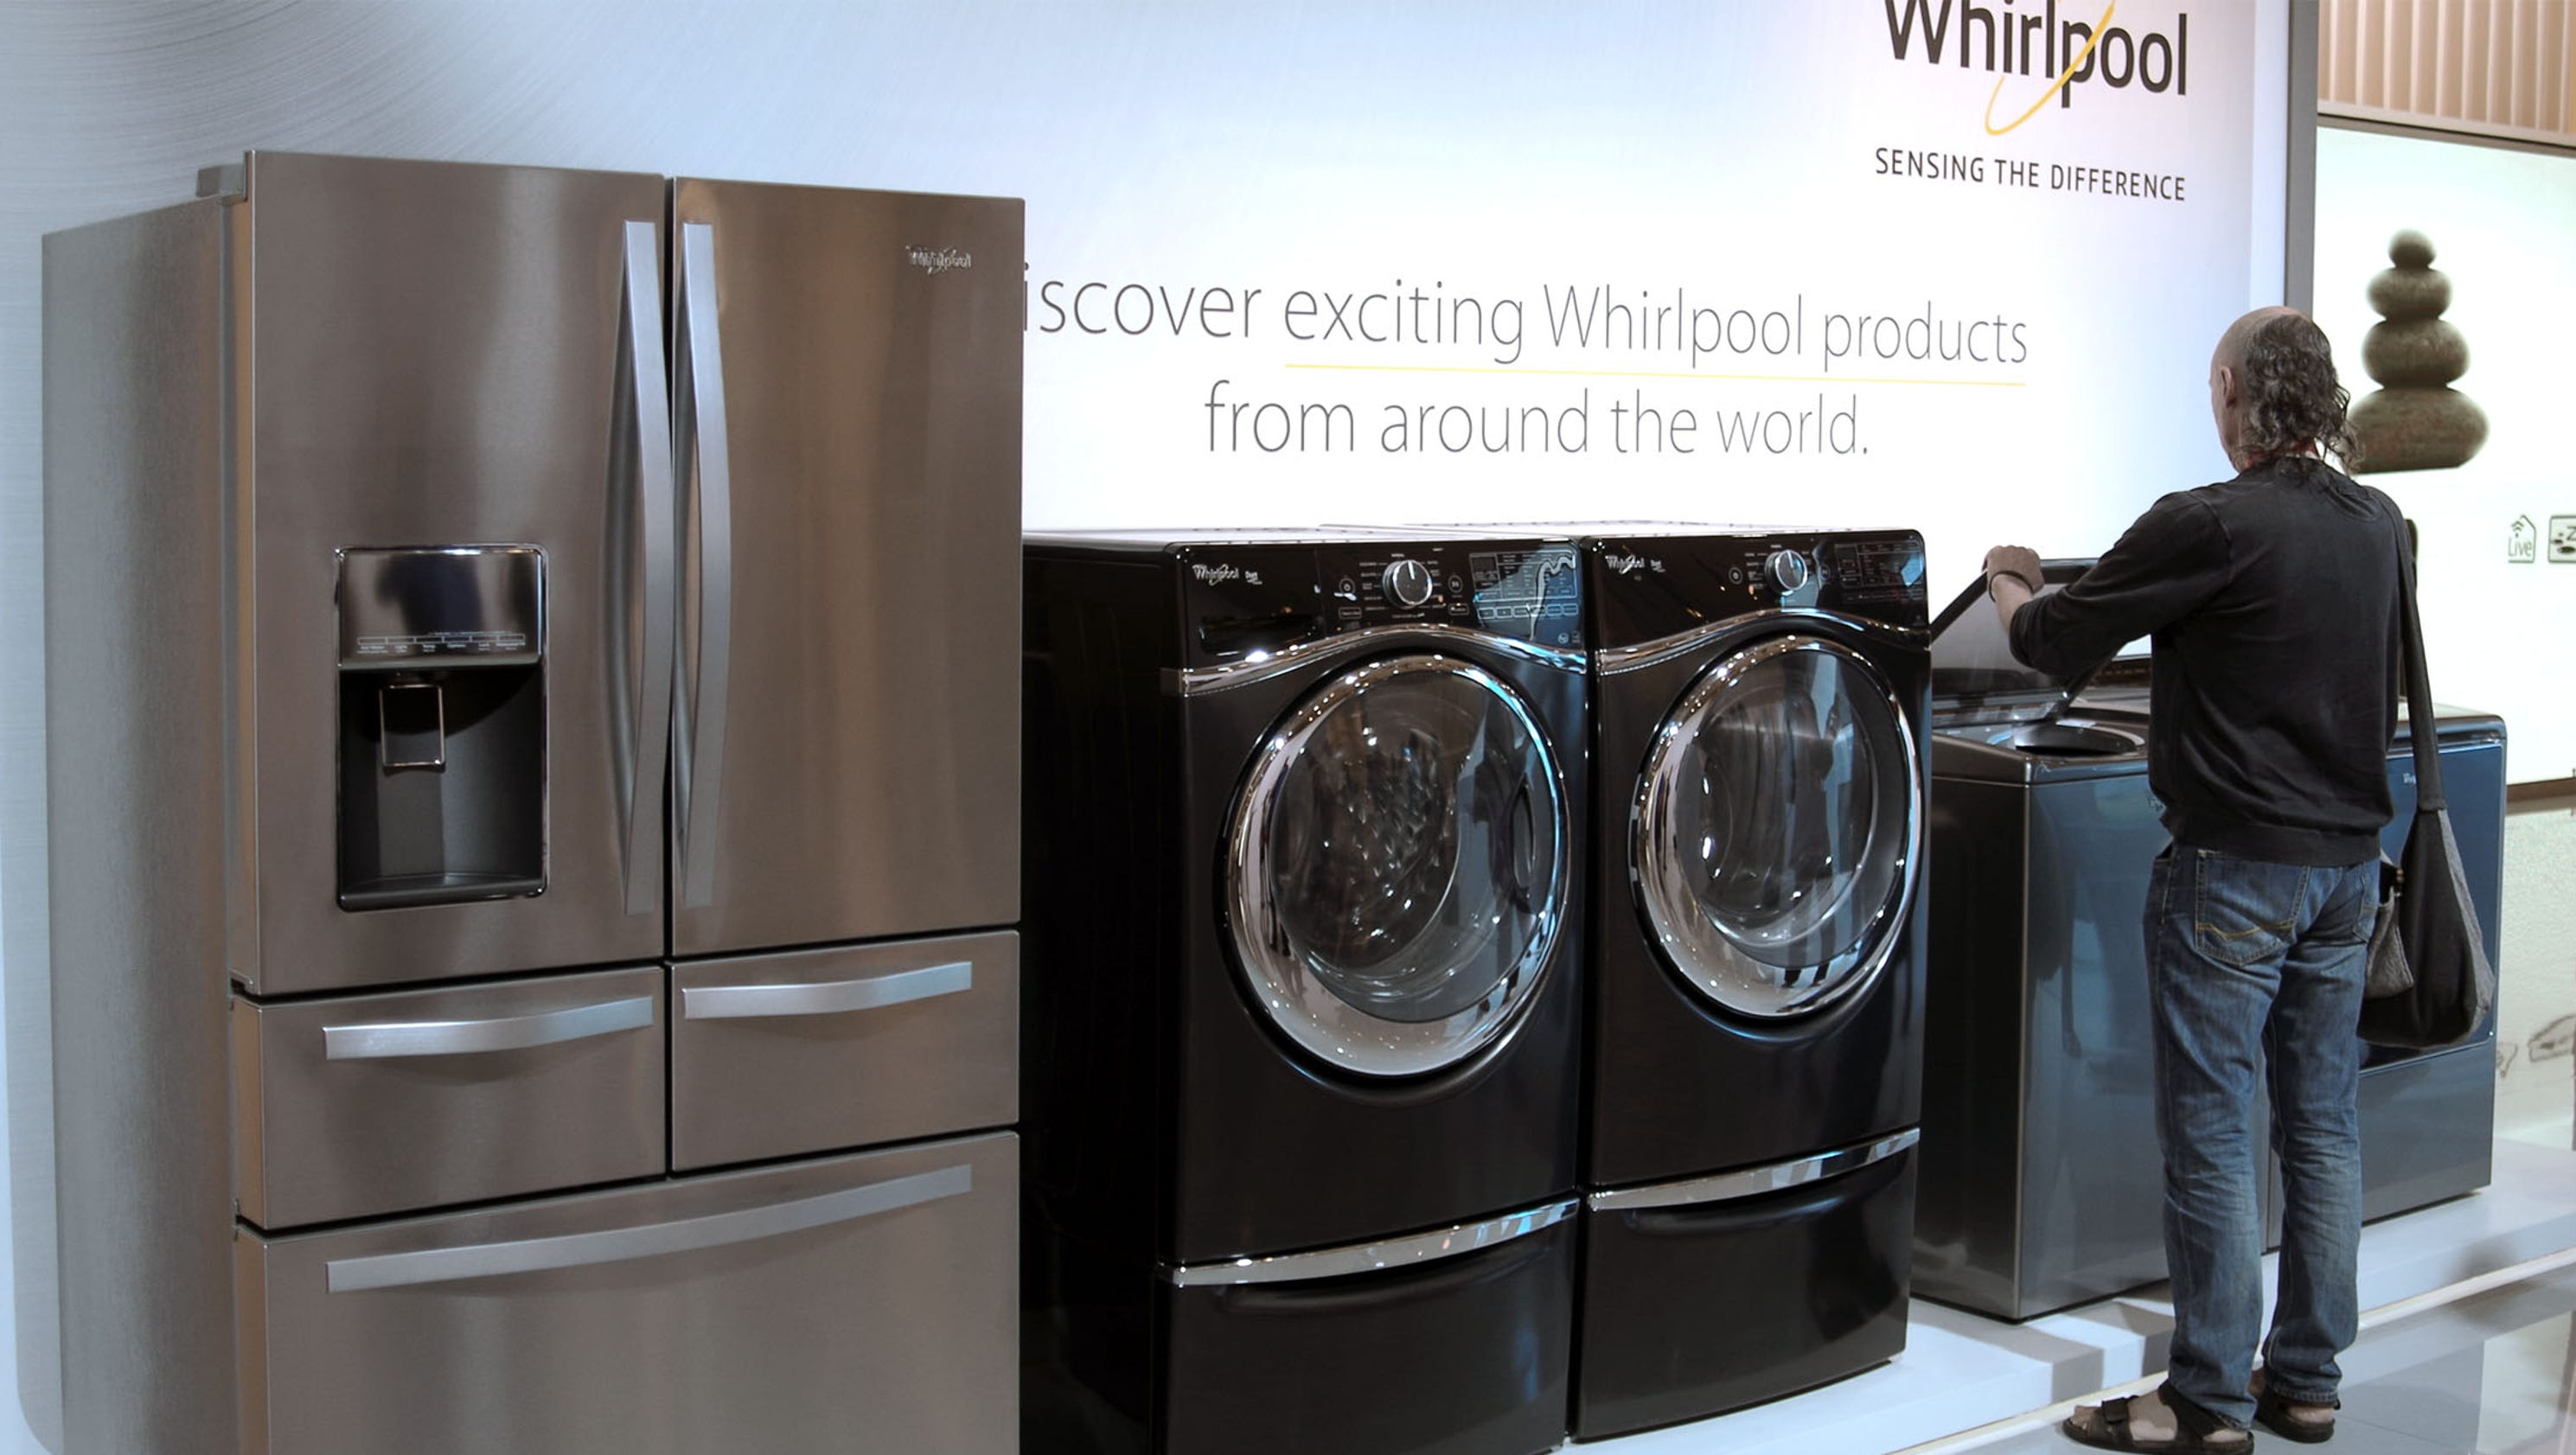 Whirlpool reveals plans for global expansion